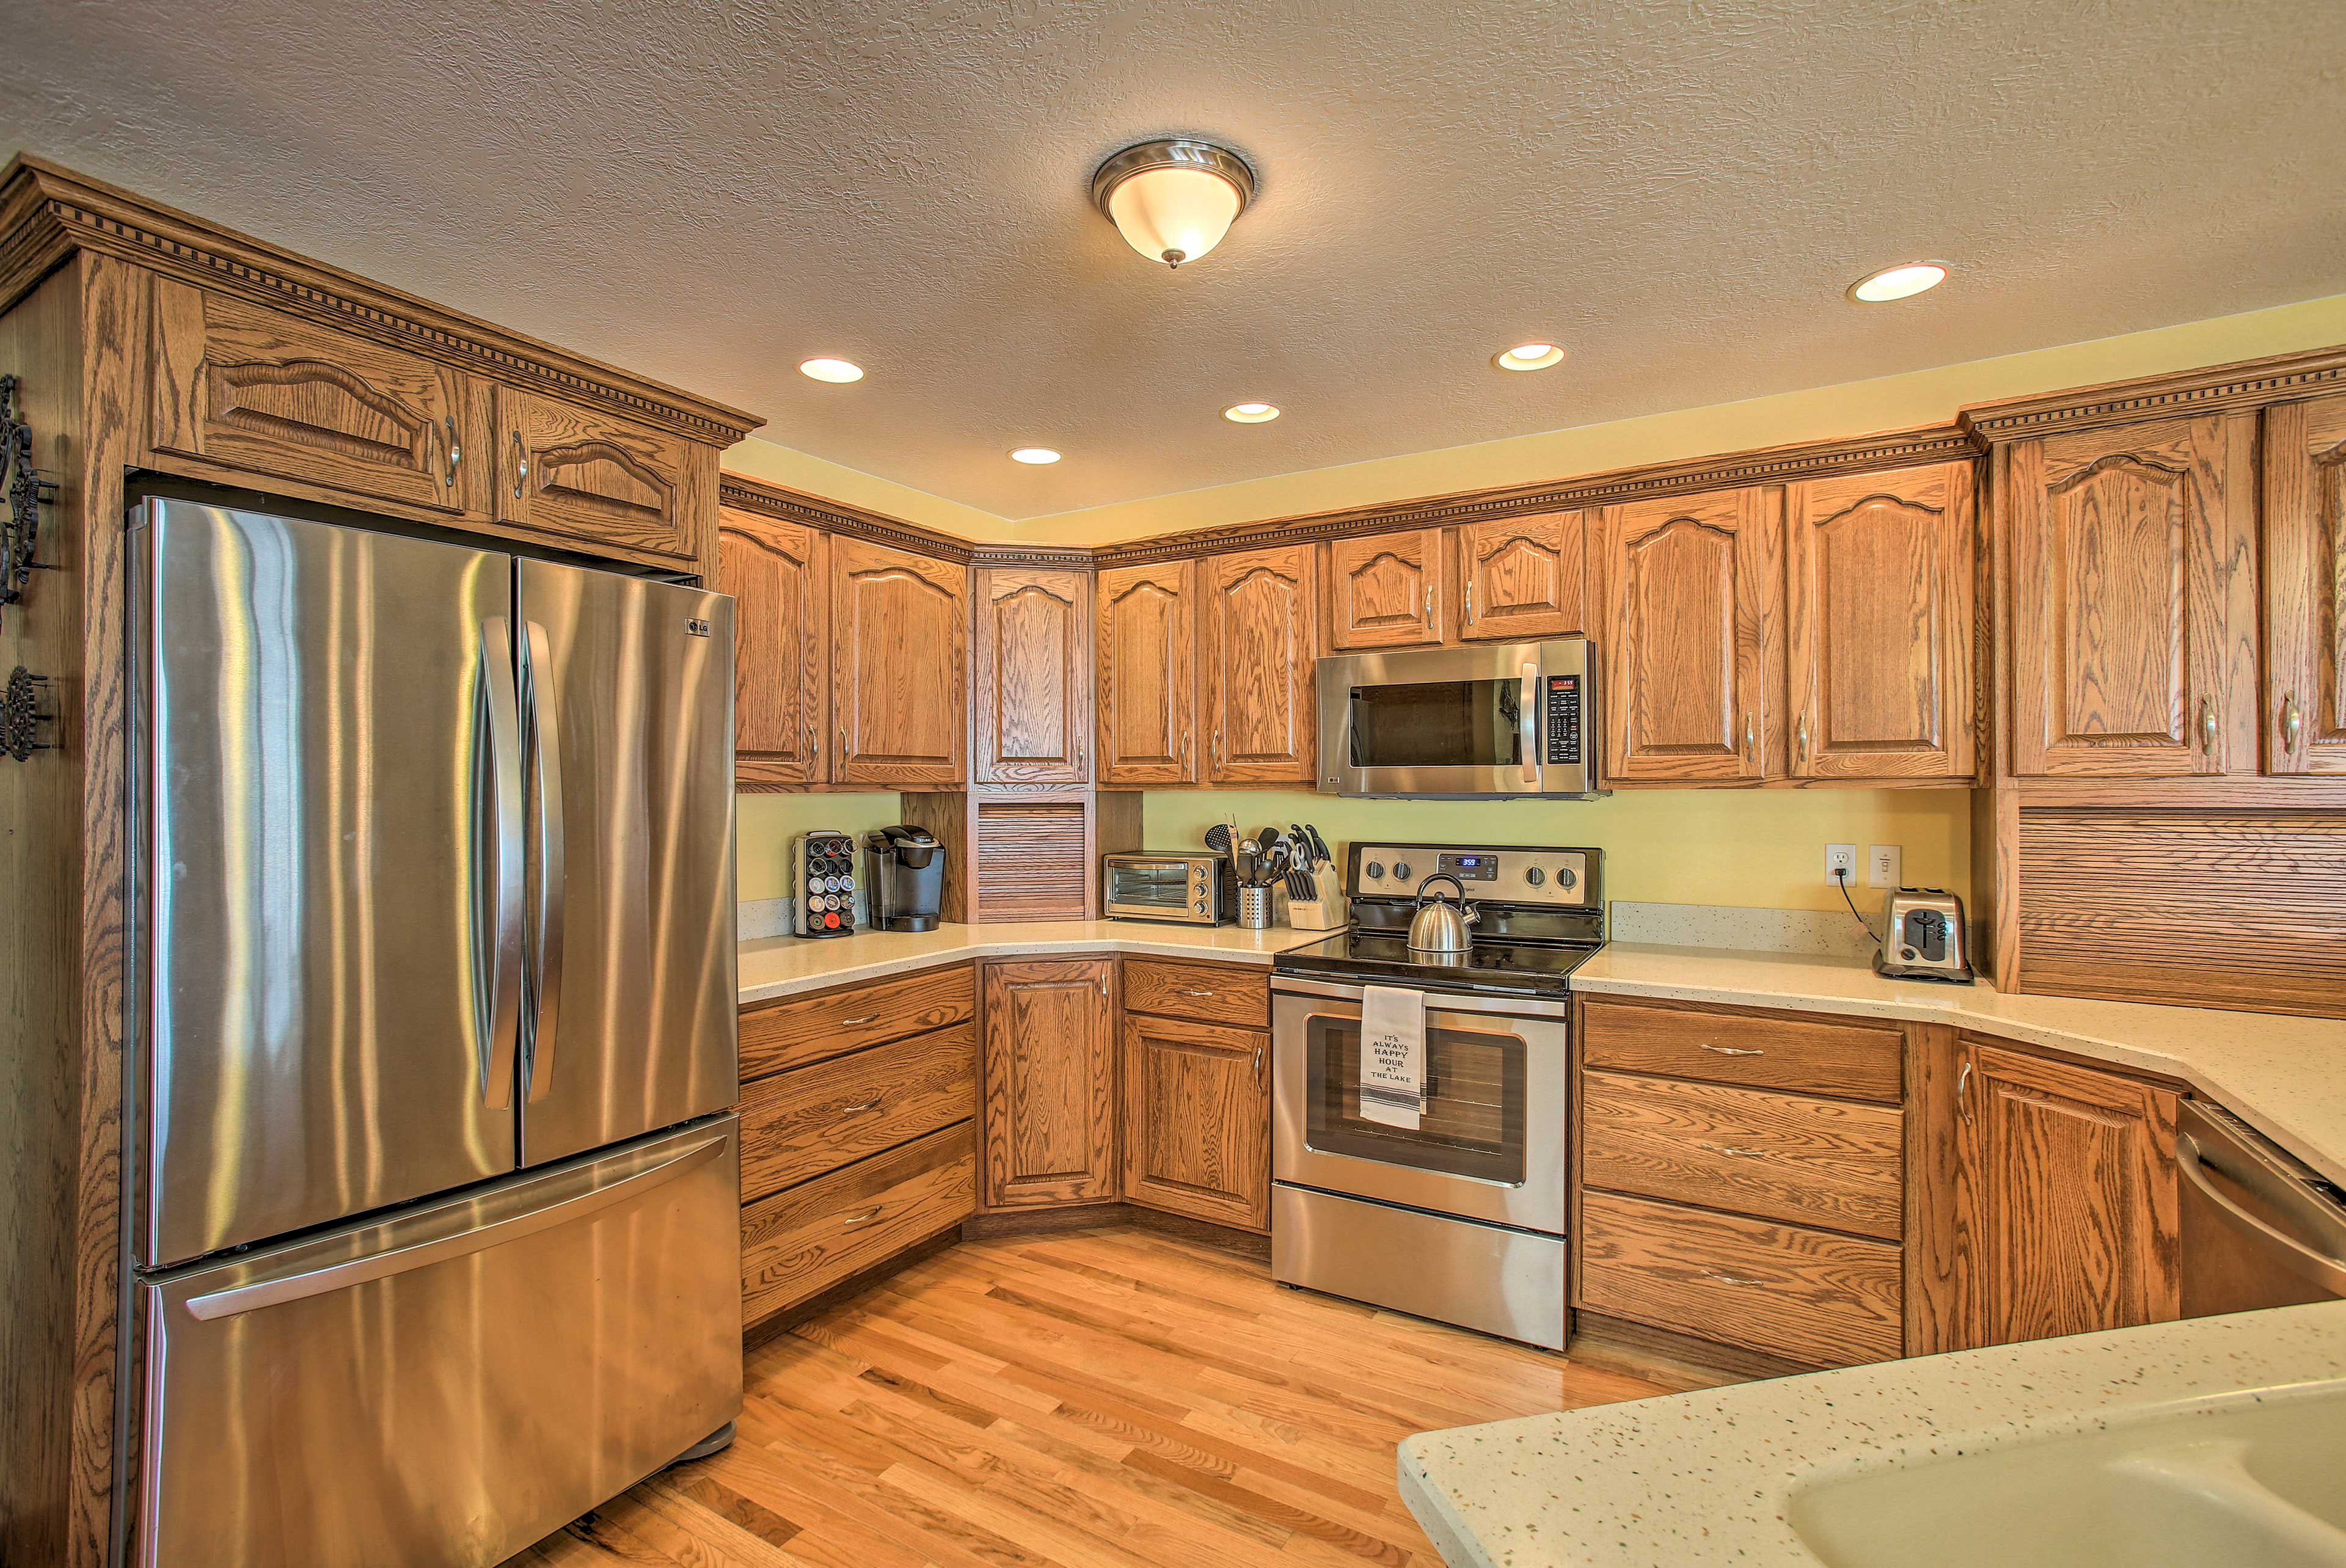 Stainless steel appliances are featured, alongside other essentials.